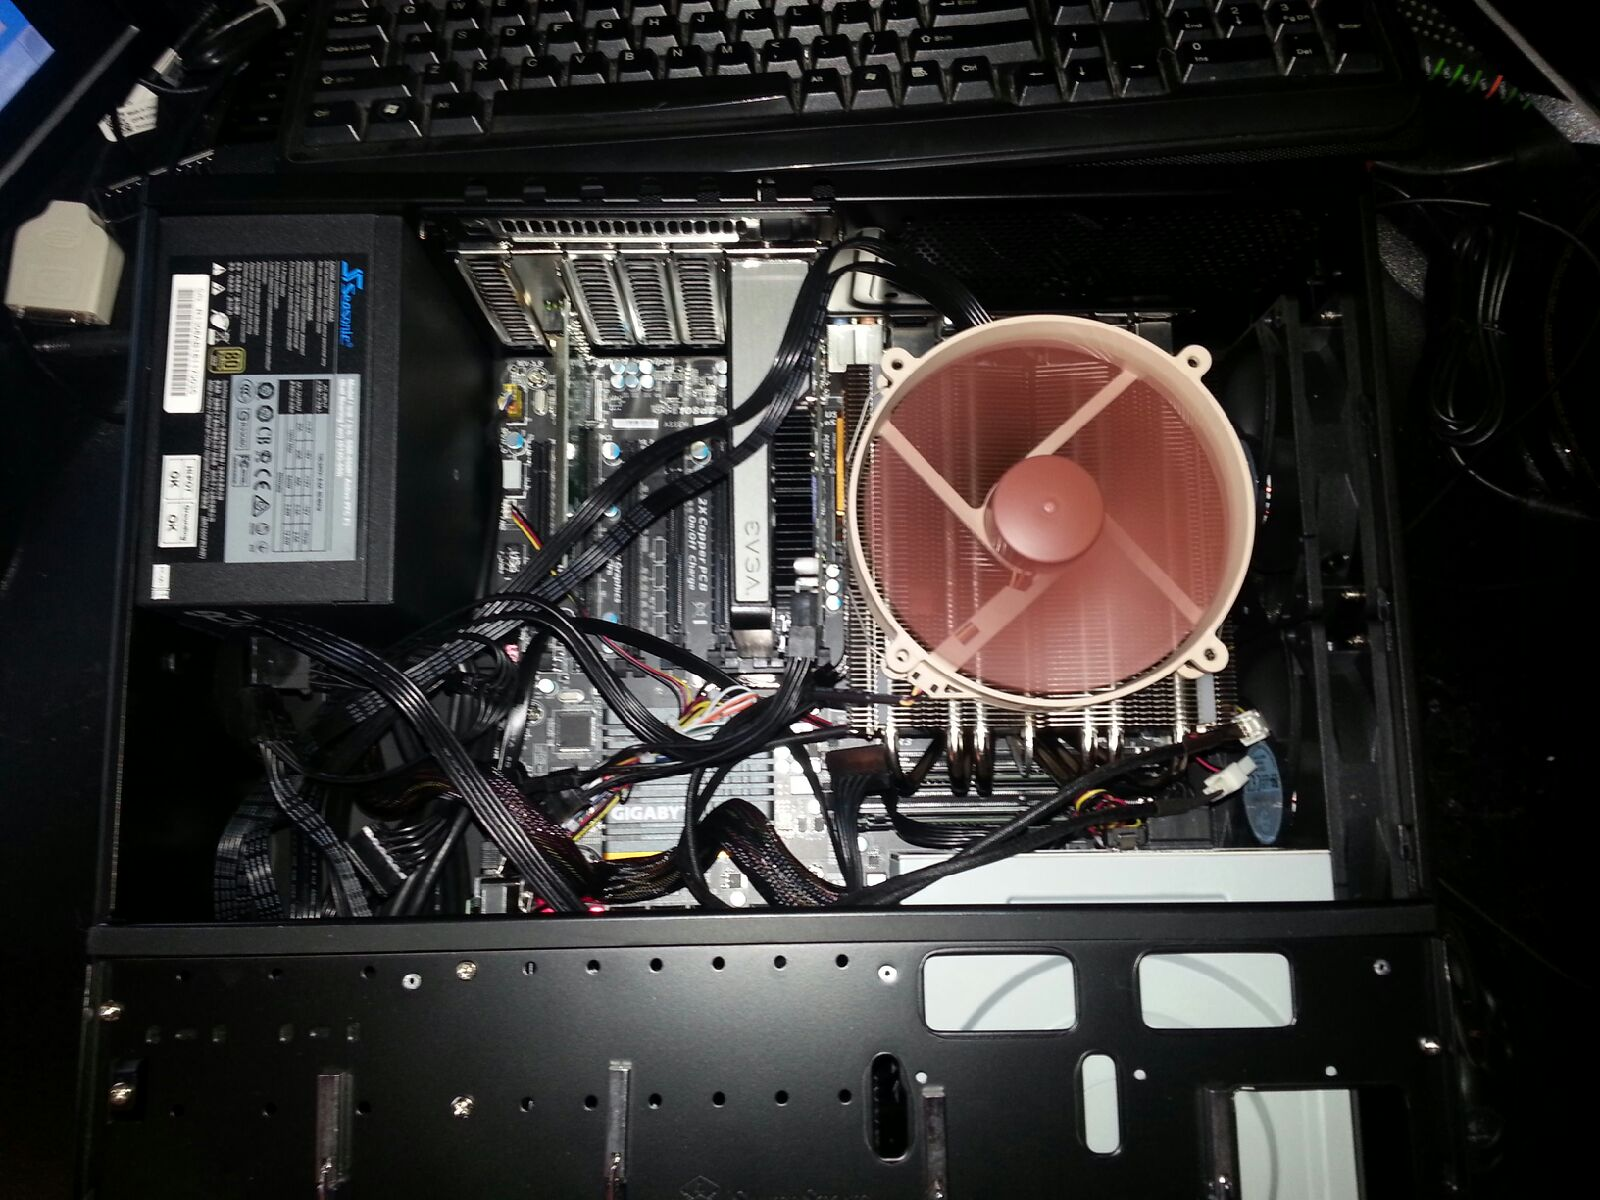 Media pc finished minus cable management........booted up to check fan orientation.